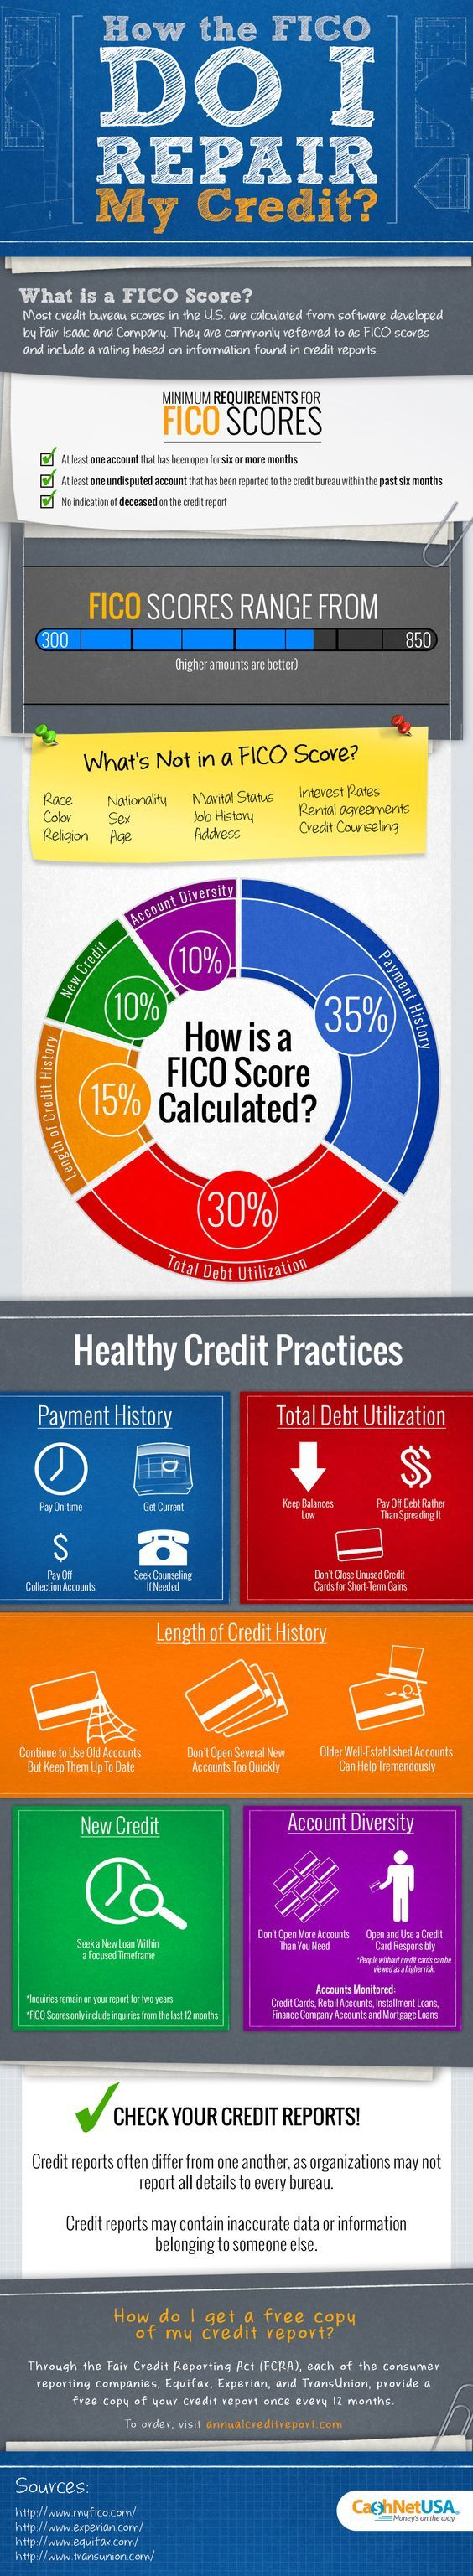 What Credit Score do You Need to qualify for a FHA VA KHC Kentucky Mortgage? What Credit Score do You Need to Buy a Kentucky Home? When it comes to mortgages and credit scores, there are two reall…